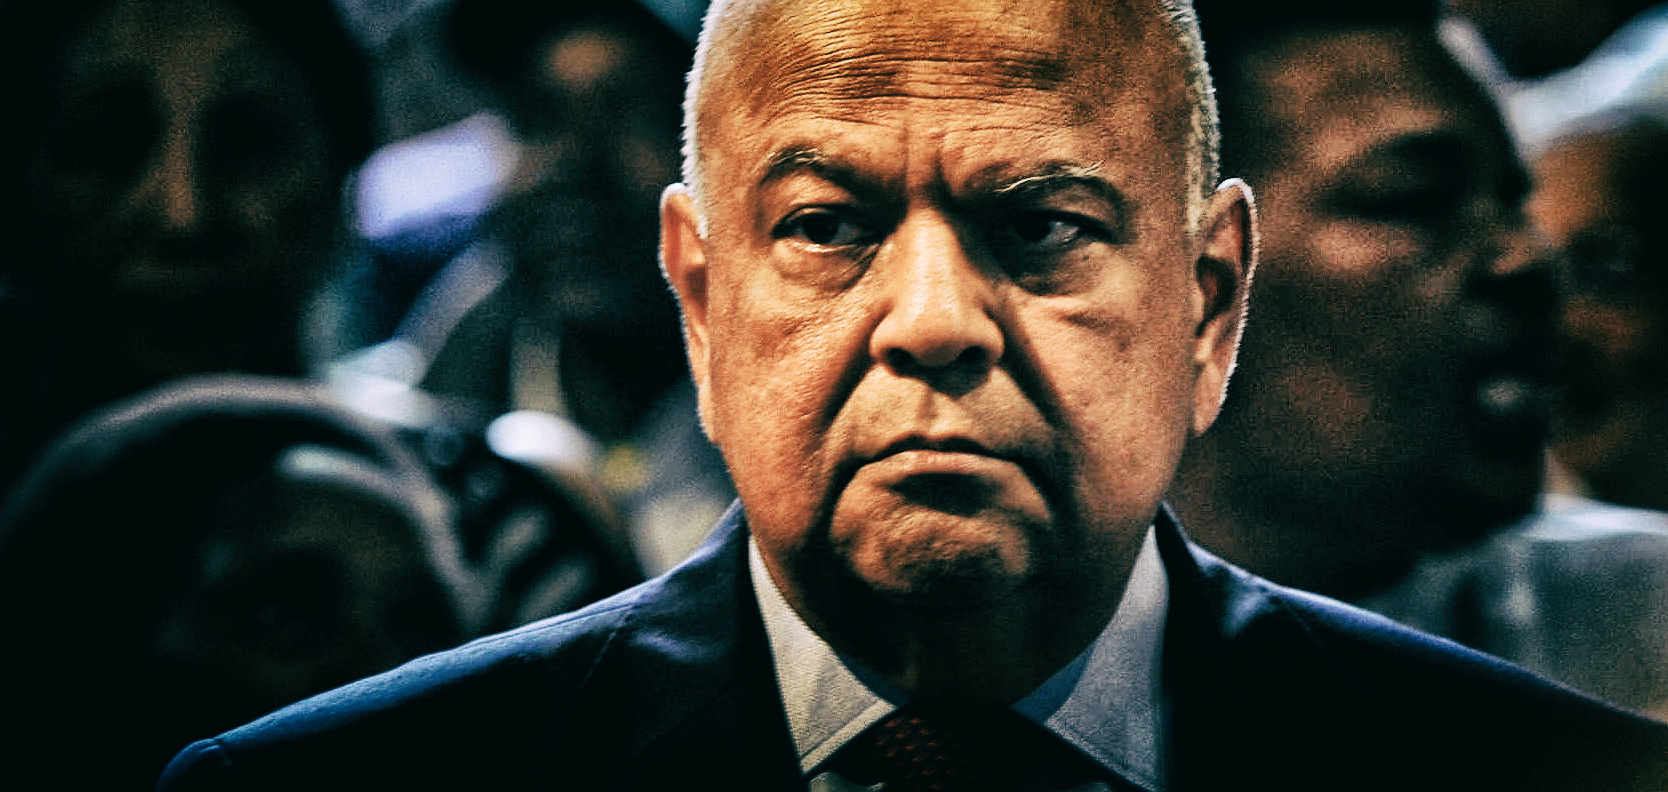 Defender Pravin comes out guns blazing against Protector Busisiwe — and he's not firing blanks